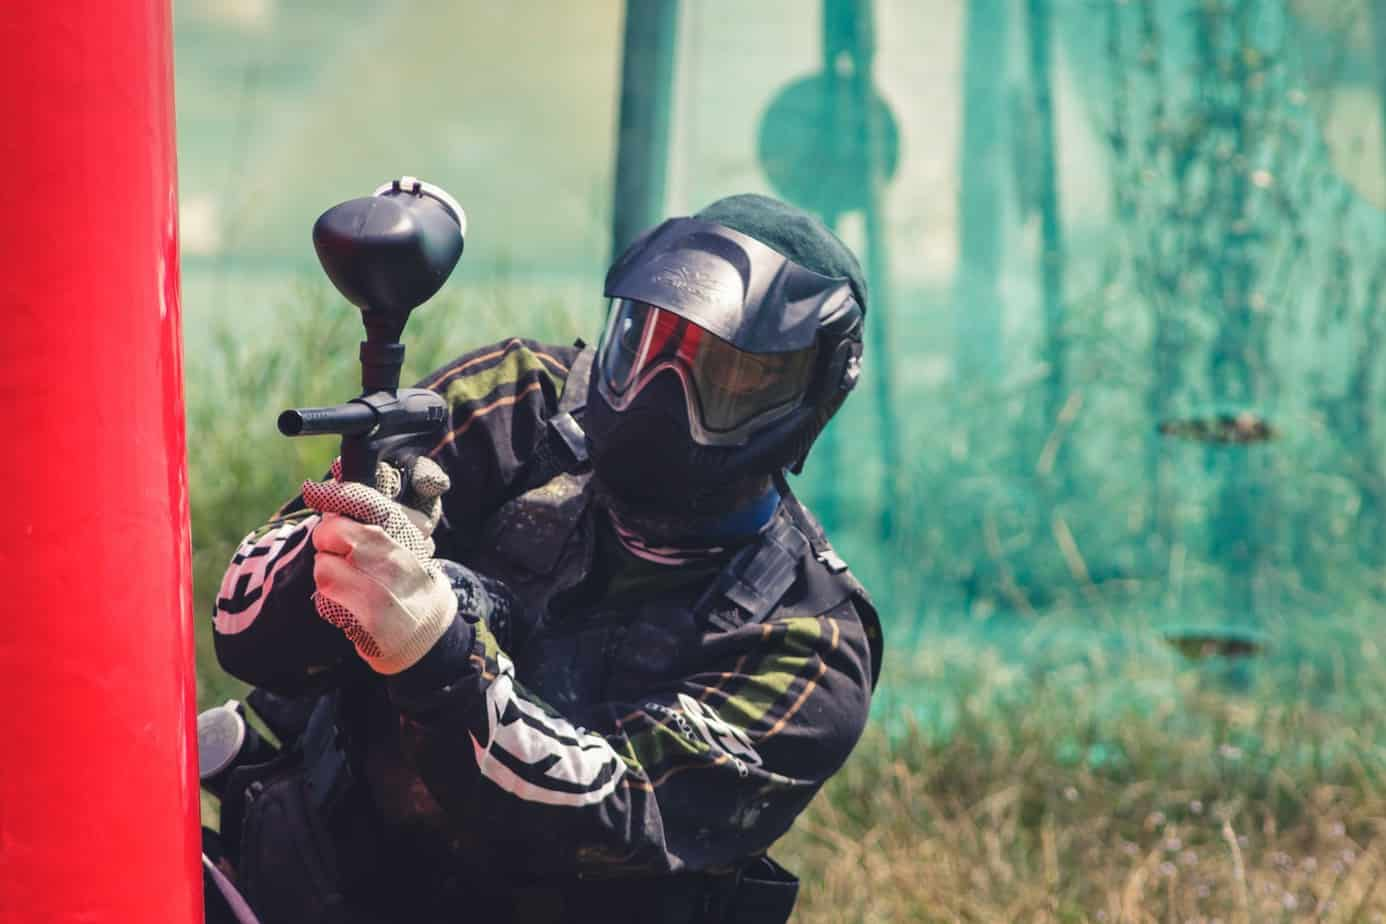 accurate paintball gun shooter